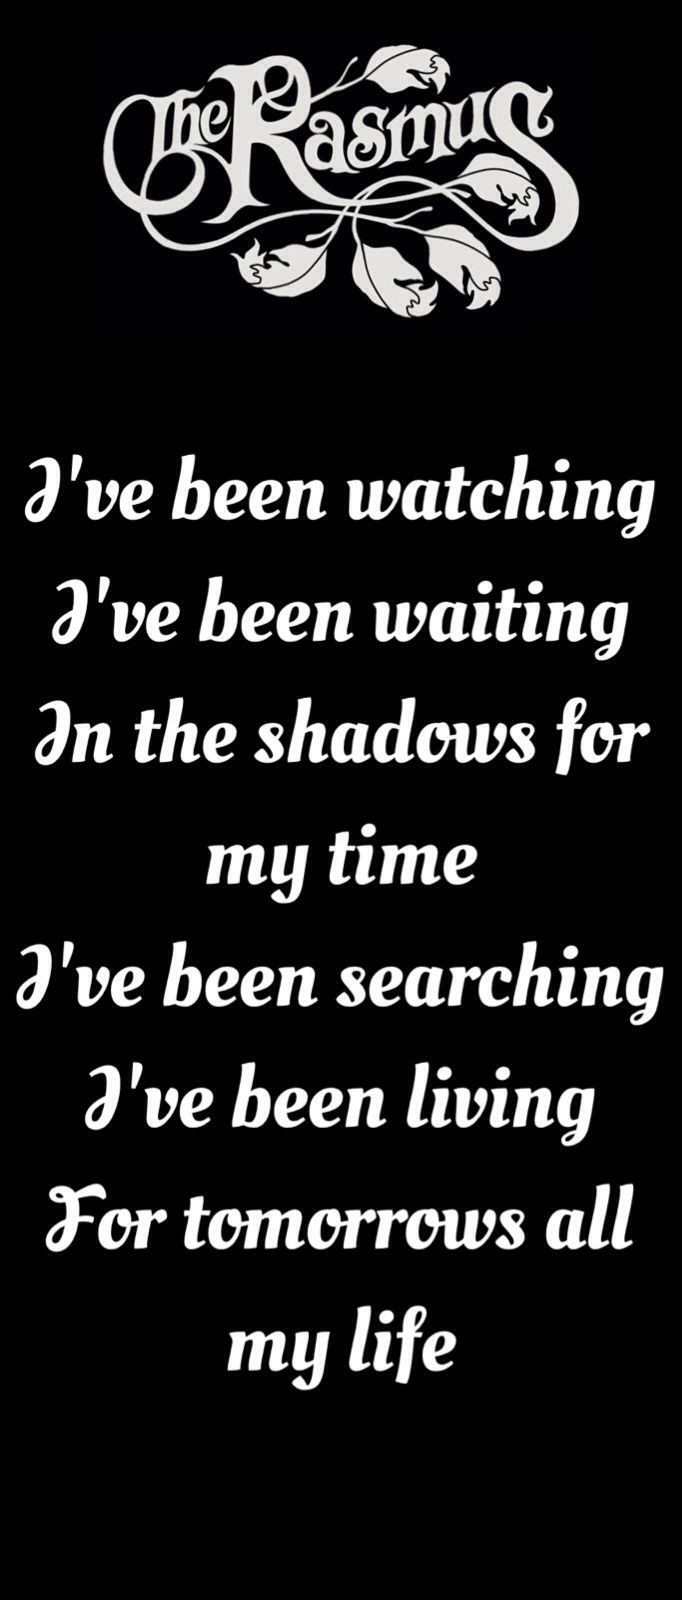 In The Shadows lyrics- I remember coming home from school to a broken home and a lonely hot lunch, and I'd listen to The Rasmus on TV and life would be a little better for a moment or so